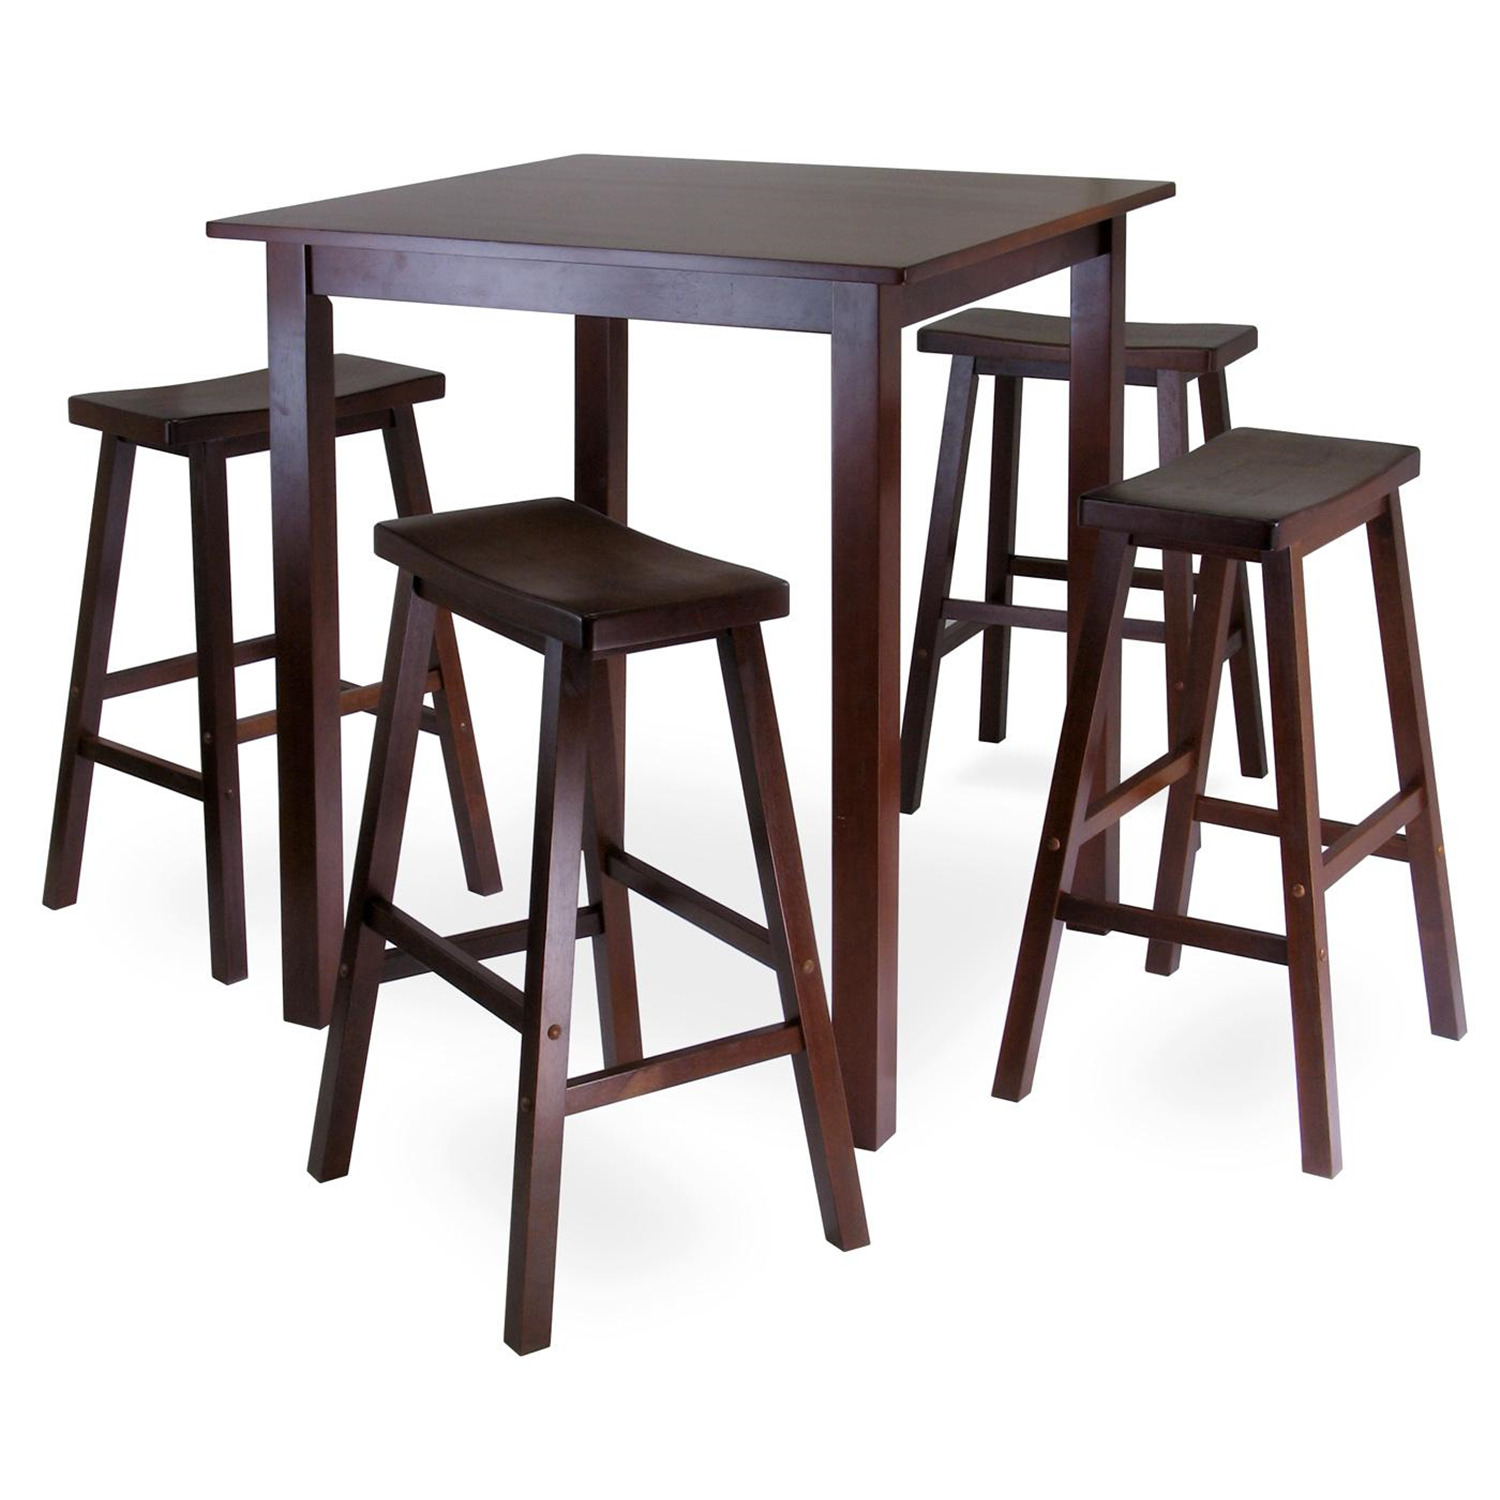 Bar Table Set Parkland 5pc Square High Pub Table Set With 4 Saddle Seat